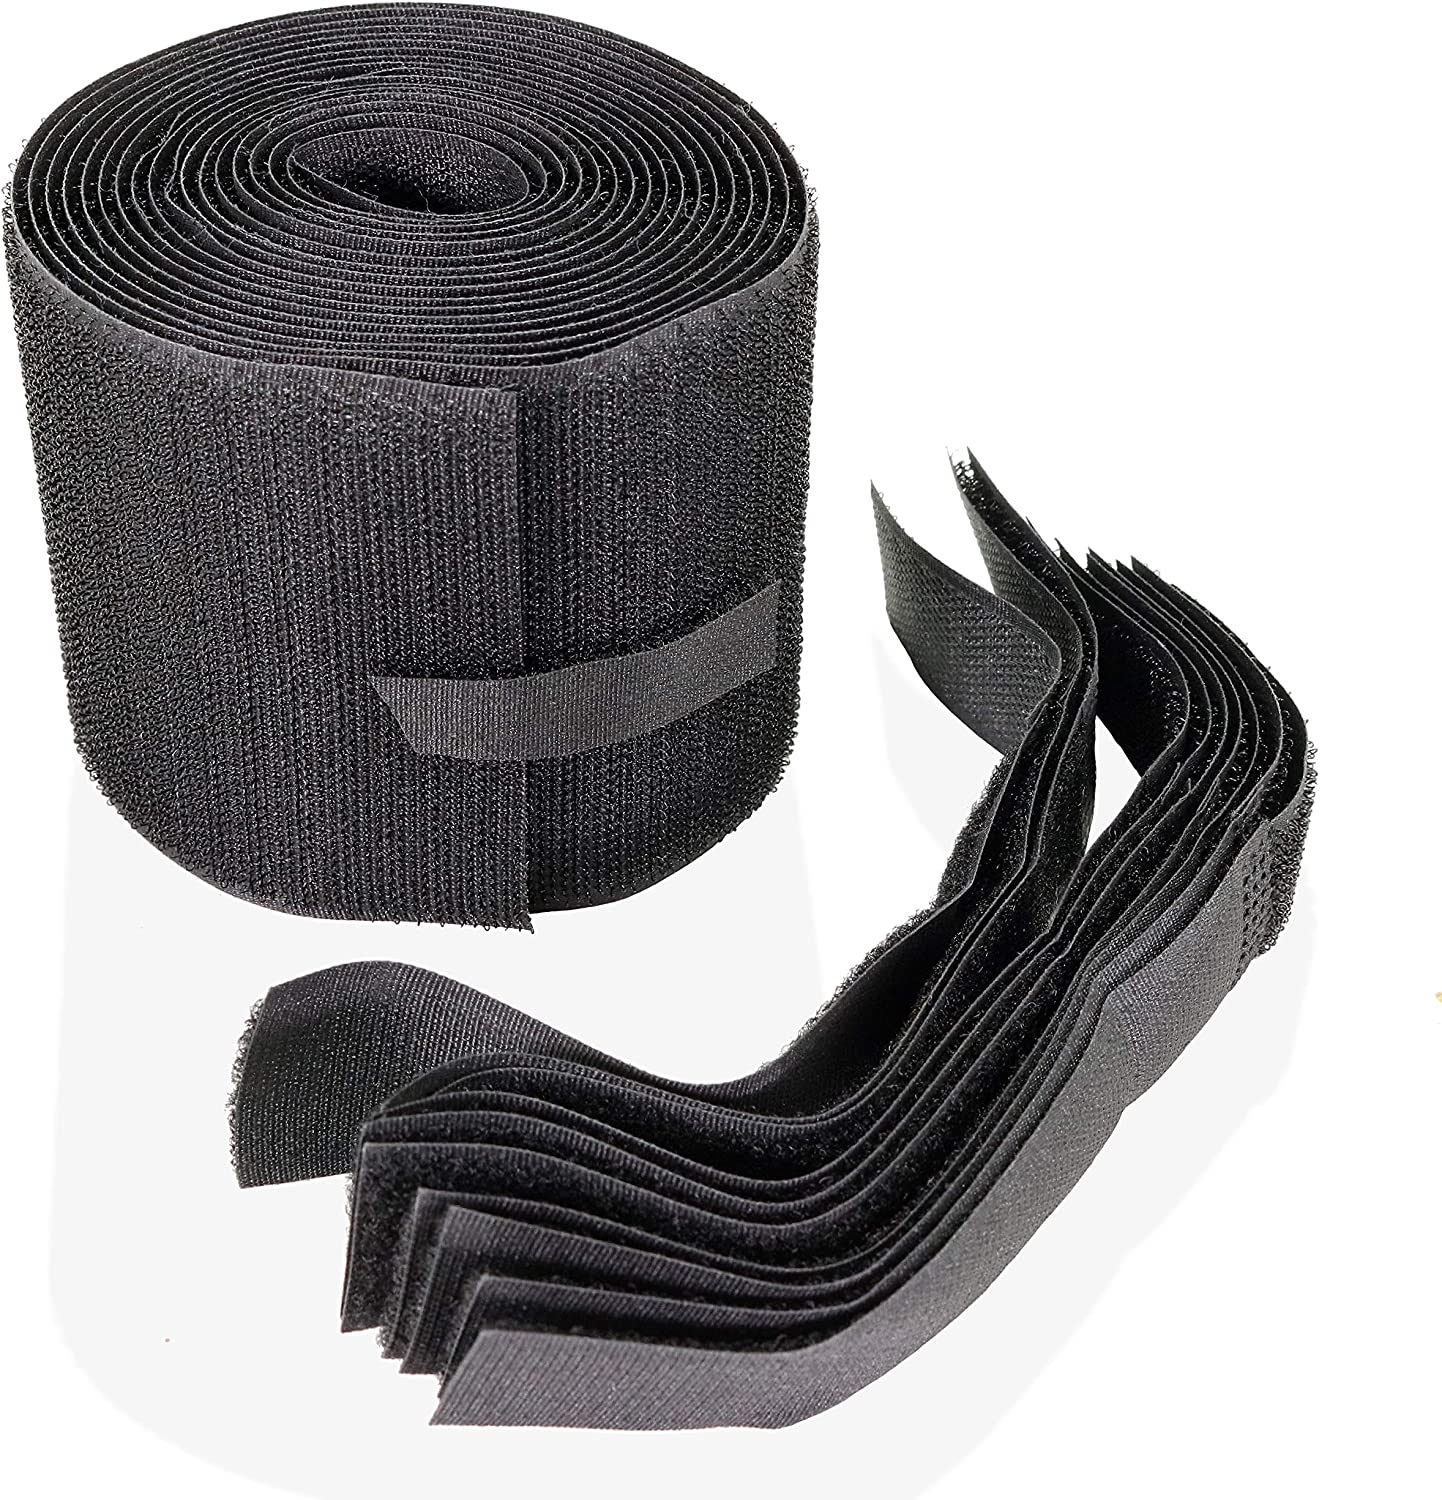 SPLENDIDMODE Carpet Cable Cover Protector Comes with 10 Cable Ties, Black Nylon Cord Cover for Office and Commercial Floor Carpets, 3 Inch x 10 Feet